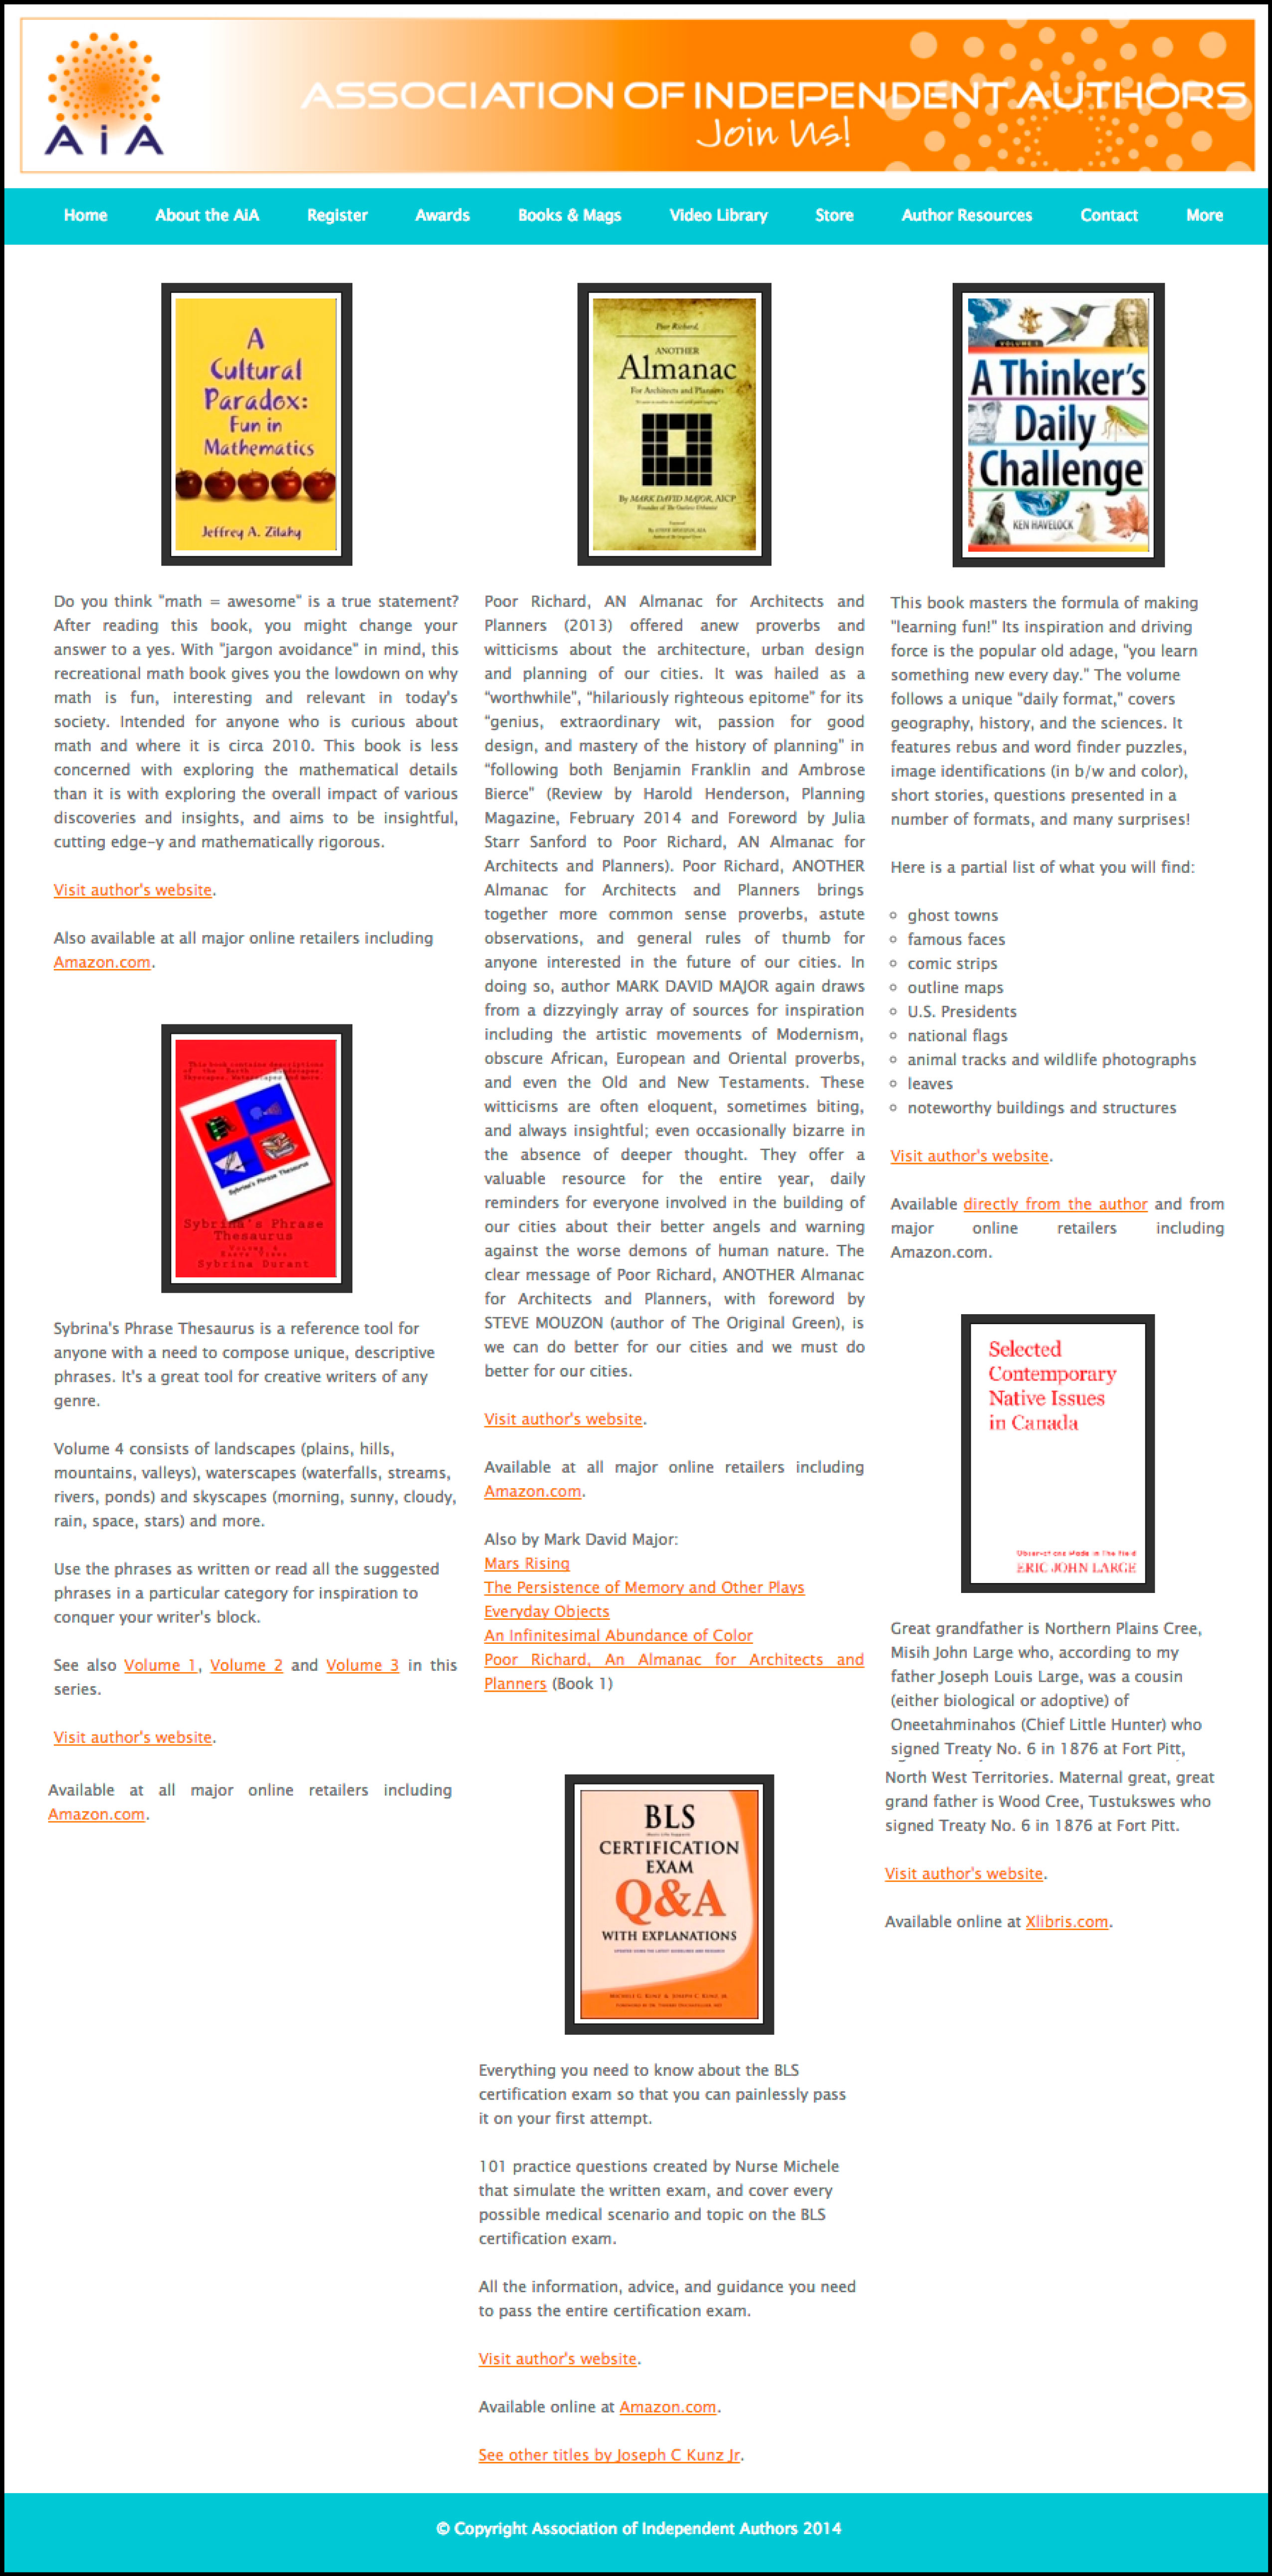 Association of Independent-Authors - www.Independent-Authors.com - BLS Certification Exam Q And A With Explanations